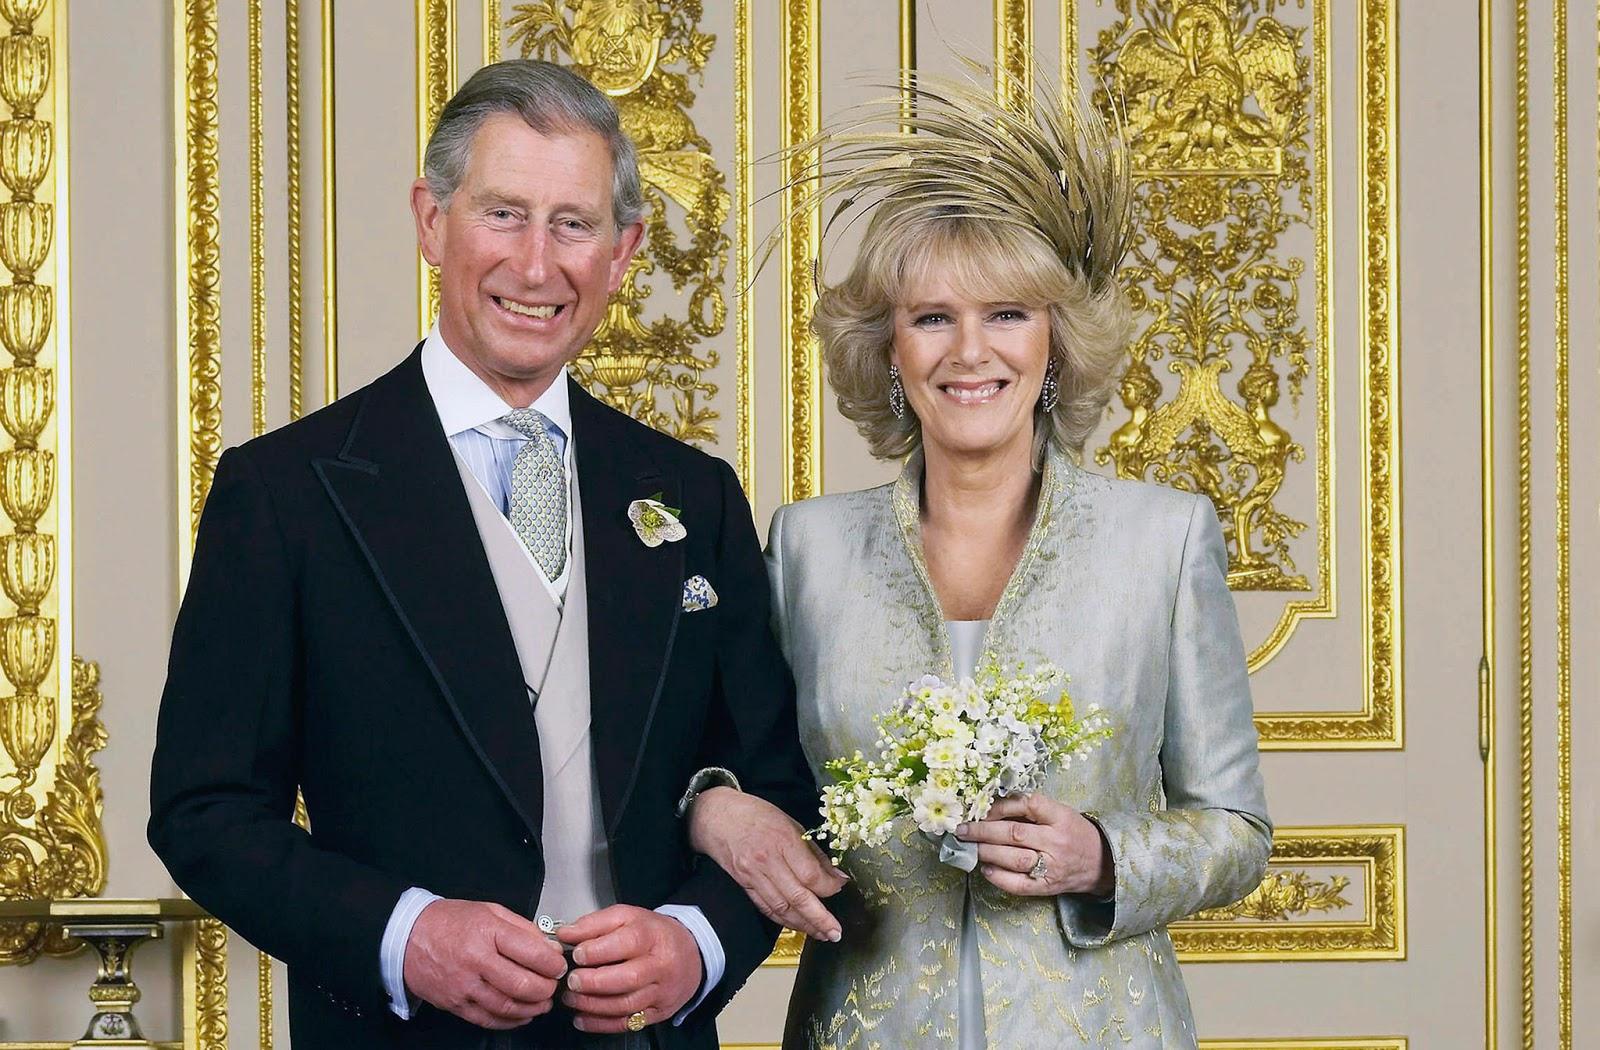 Prince Charles and wife Camilla to visit Singapore and Malaysia